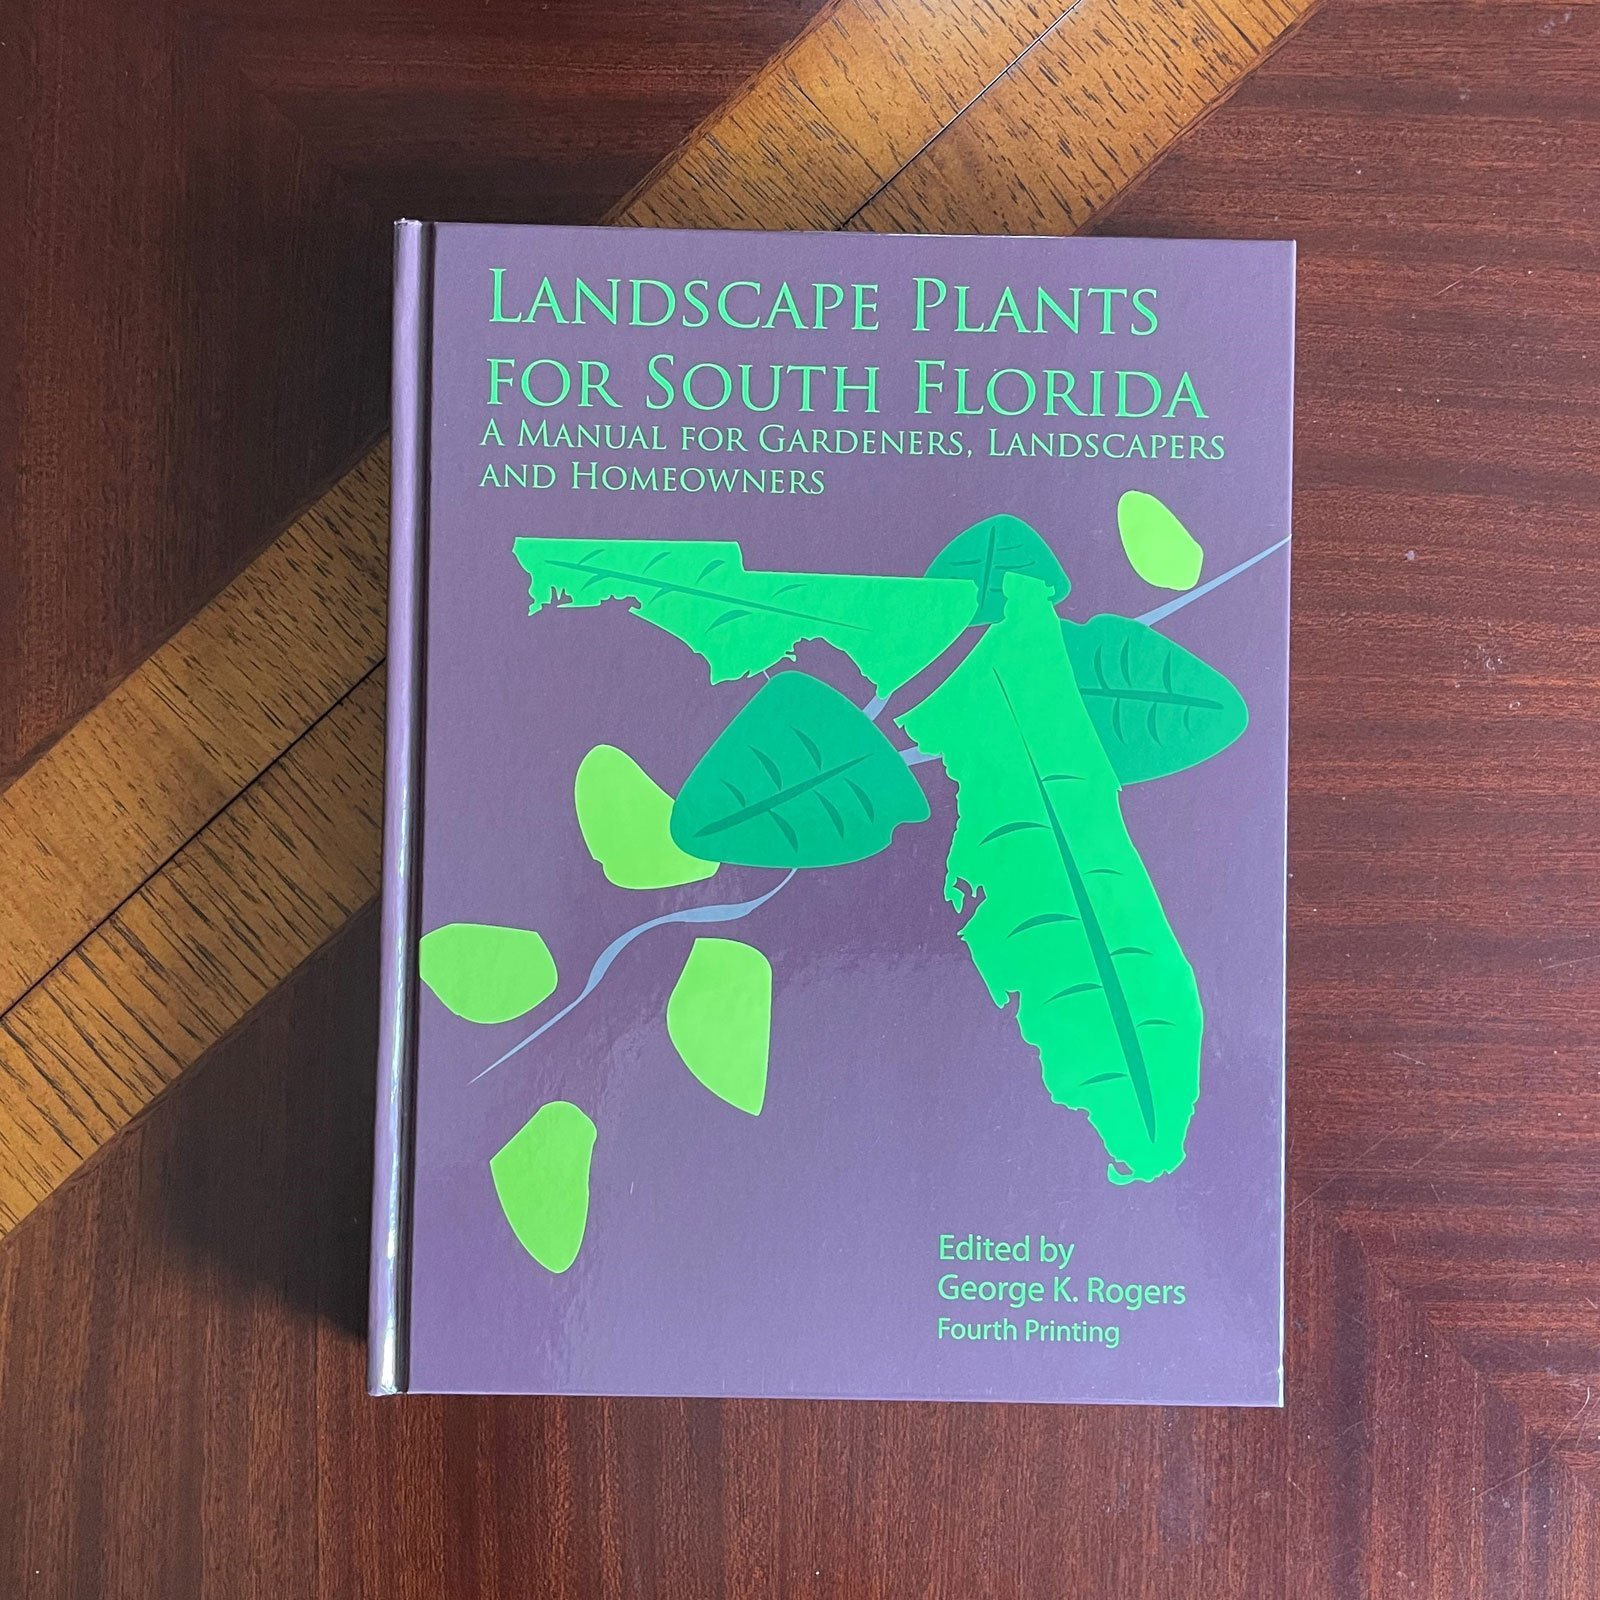 Landscape Plants for South Florida by George K. Rogers.